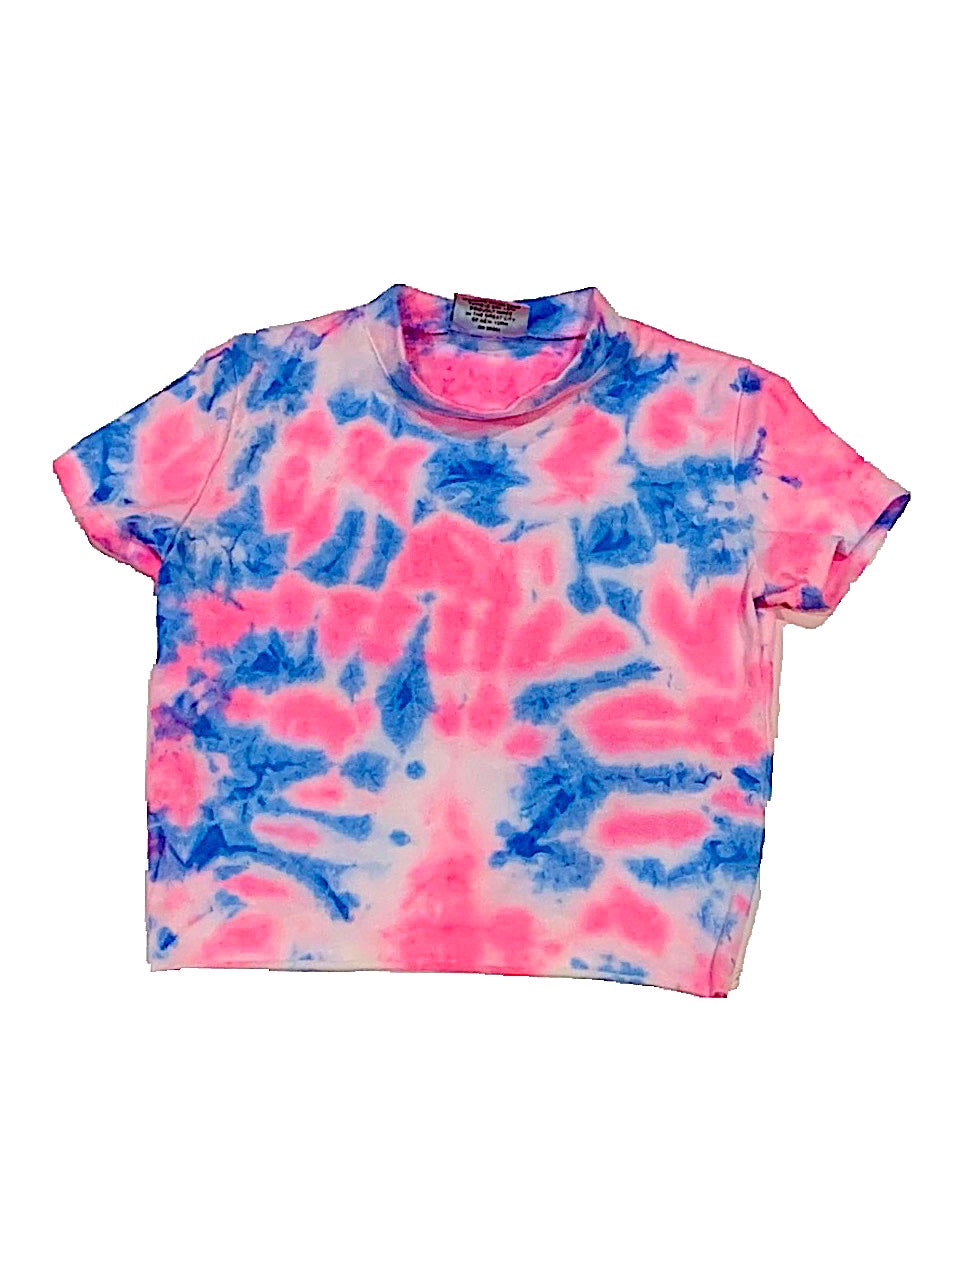 Firehouse Cotton Candy Tie Dye Tee